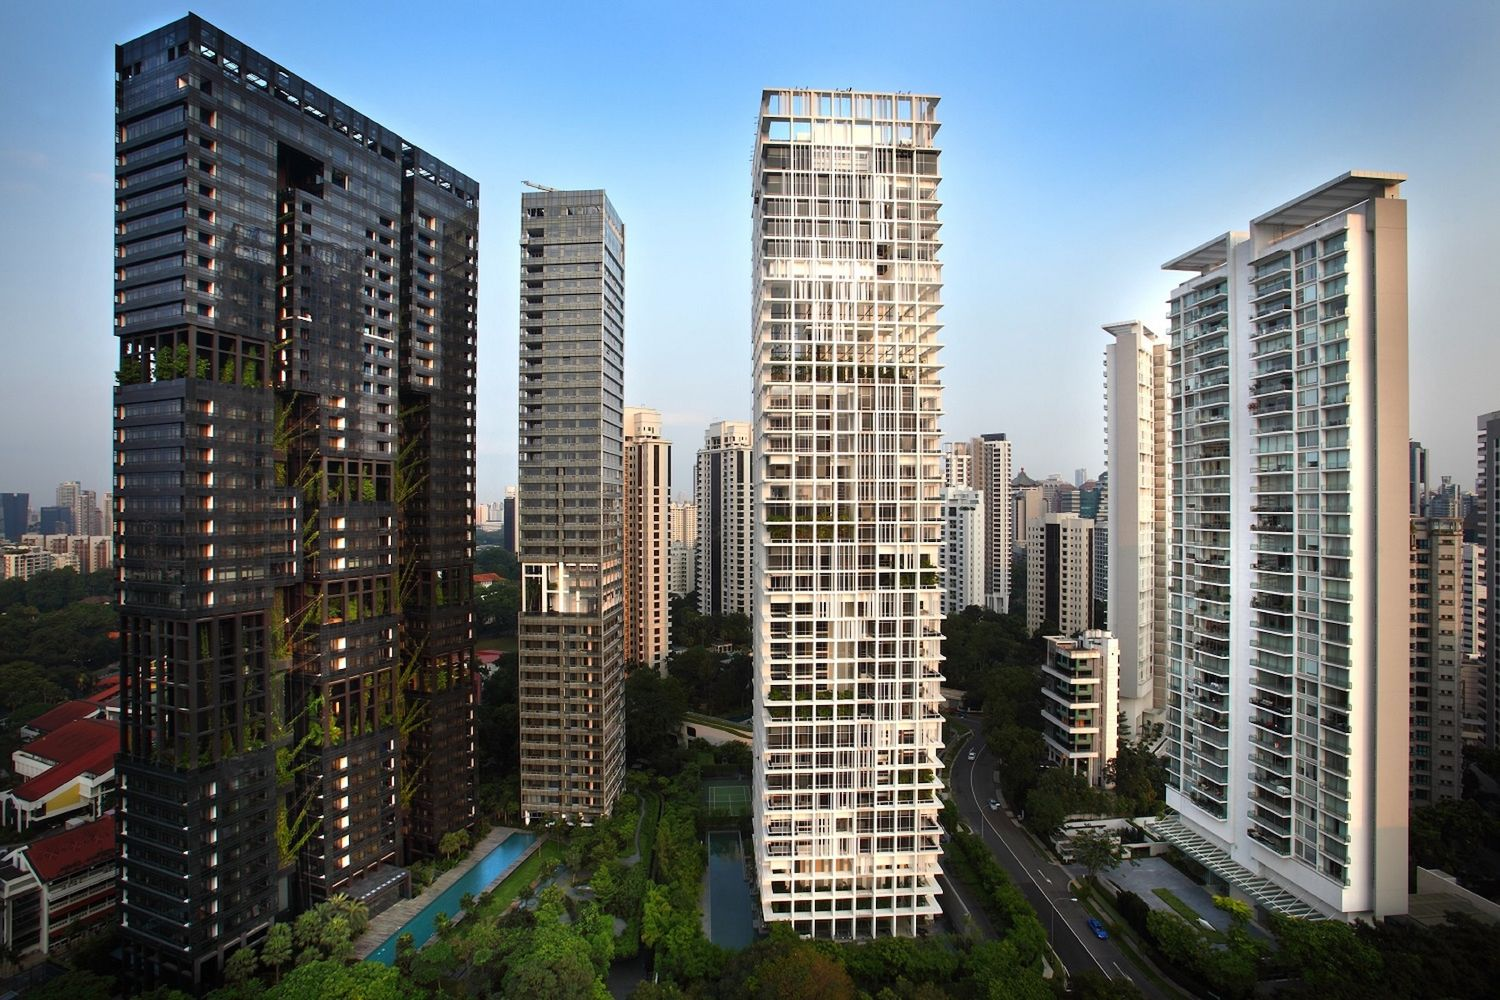 EDGEPROP SINGAPORE - Sought-after residential enclaves include Ardmore Park, the Claymore-Draycott area and the Nassim neighbourhood (Photo: Samuel Isaac Chua/EdgeProp Singapore)